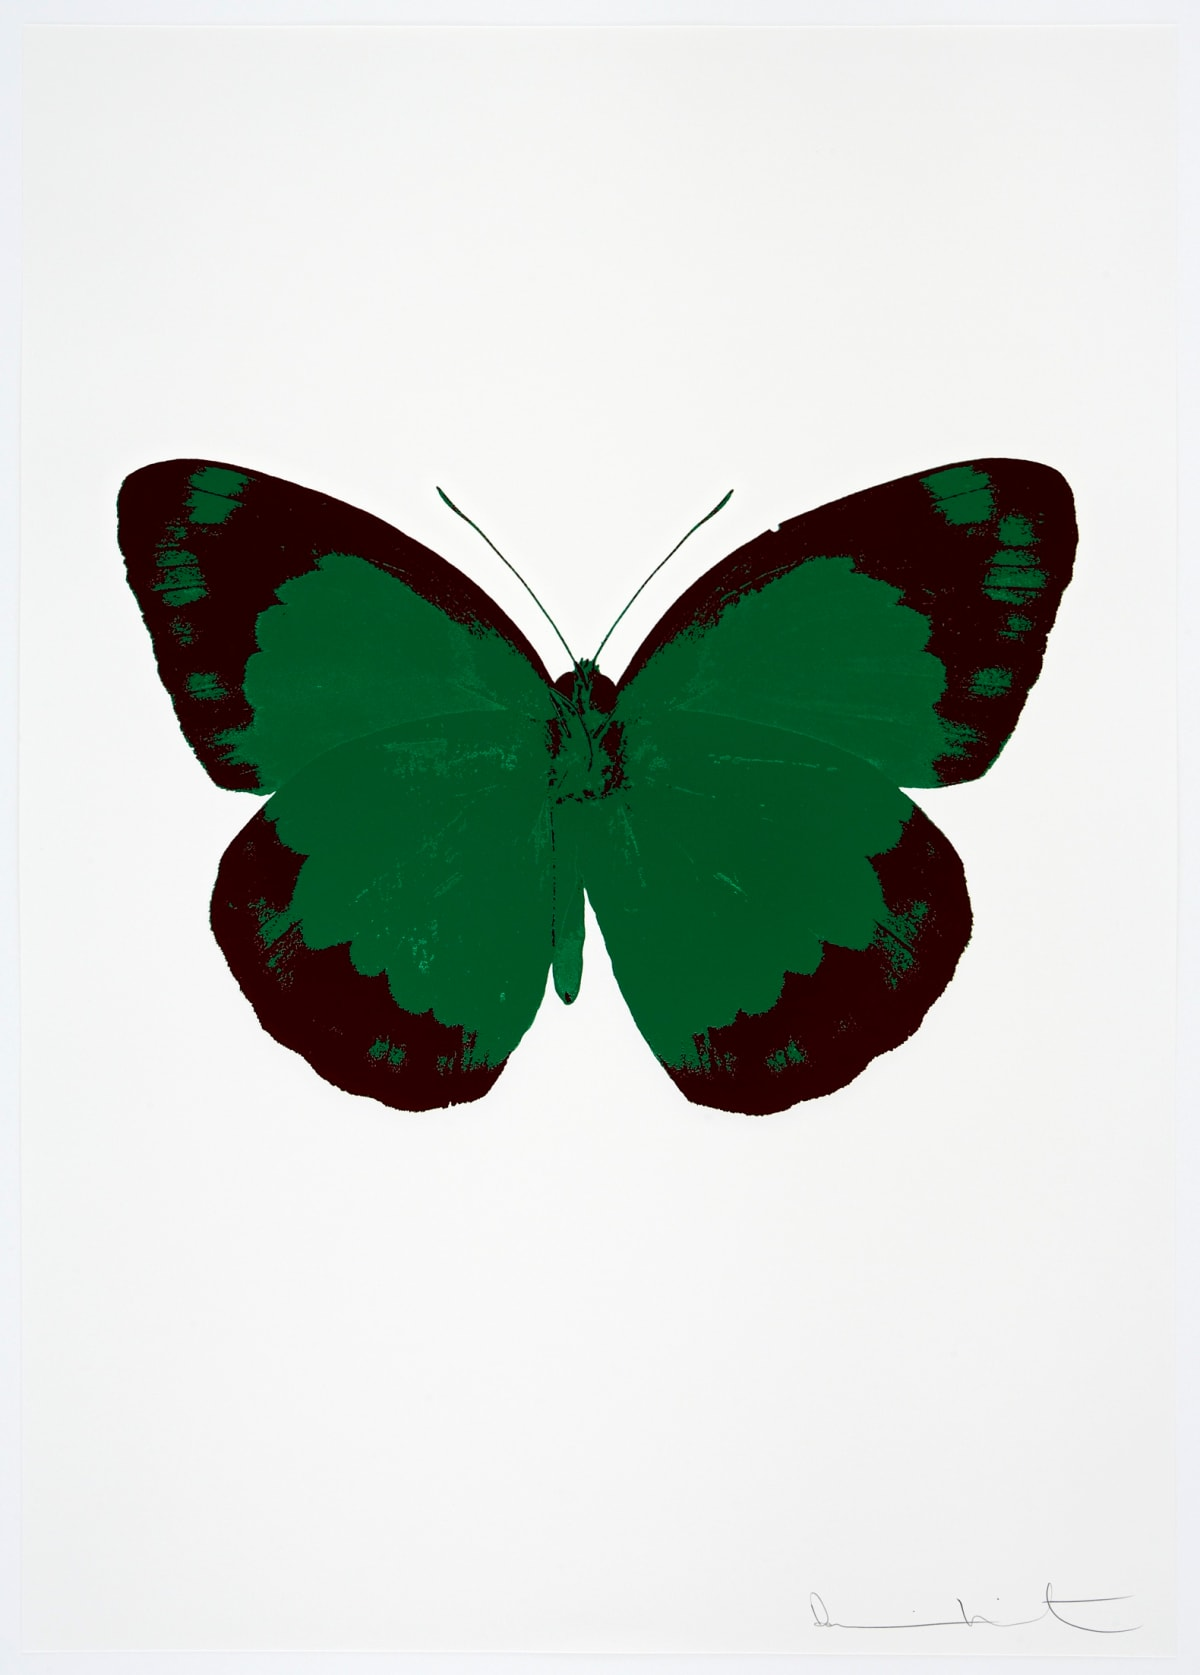 Damien Hirst The Souls II - Emerald Green/Burgundy/Blind Impression, 2010 2 colour foil block on 300gsm Arches 88 archival paper. Signed and numbered. Published by Paul Stolper and Other Criteria 72 x 51cm OC7876 / 658-59 Edition of 15